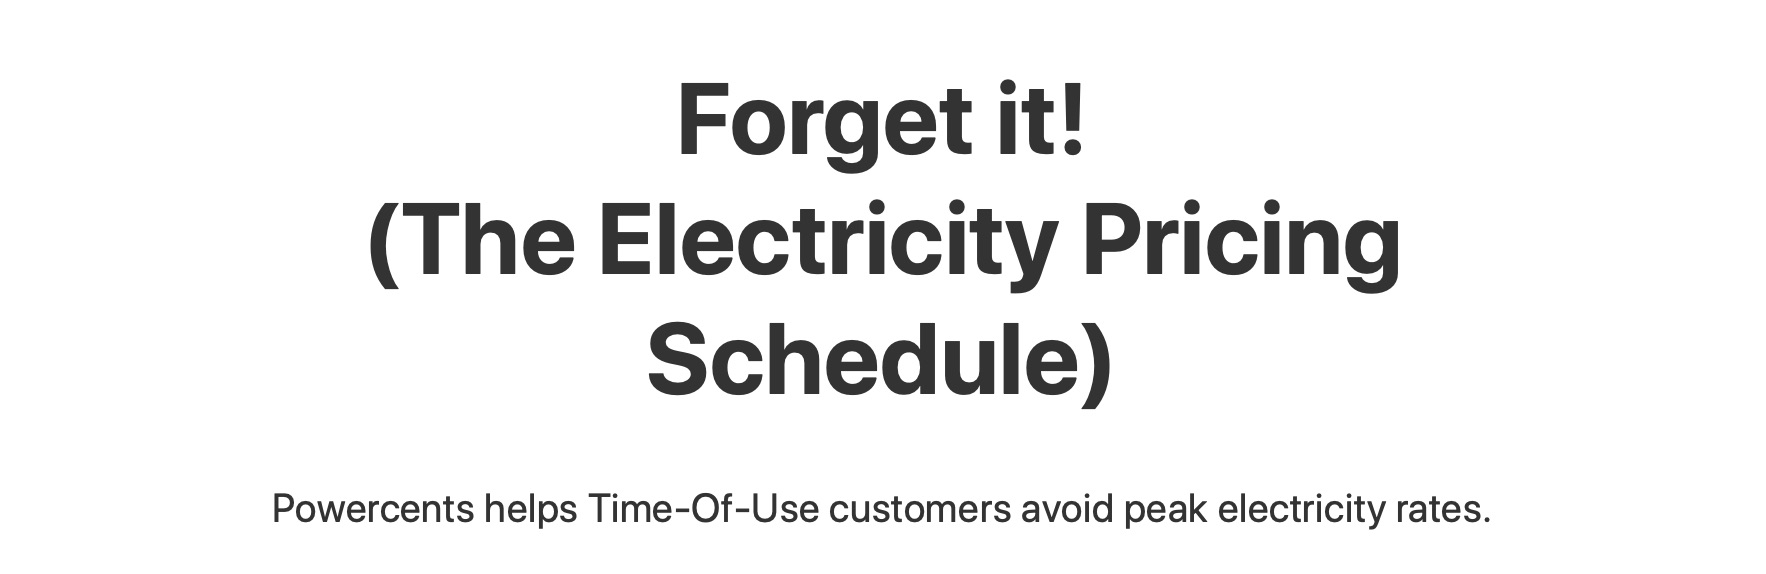 "Something punchy: ""Forget It! (The Electricity Pricing Schedule)"""